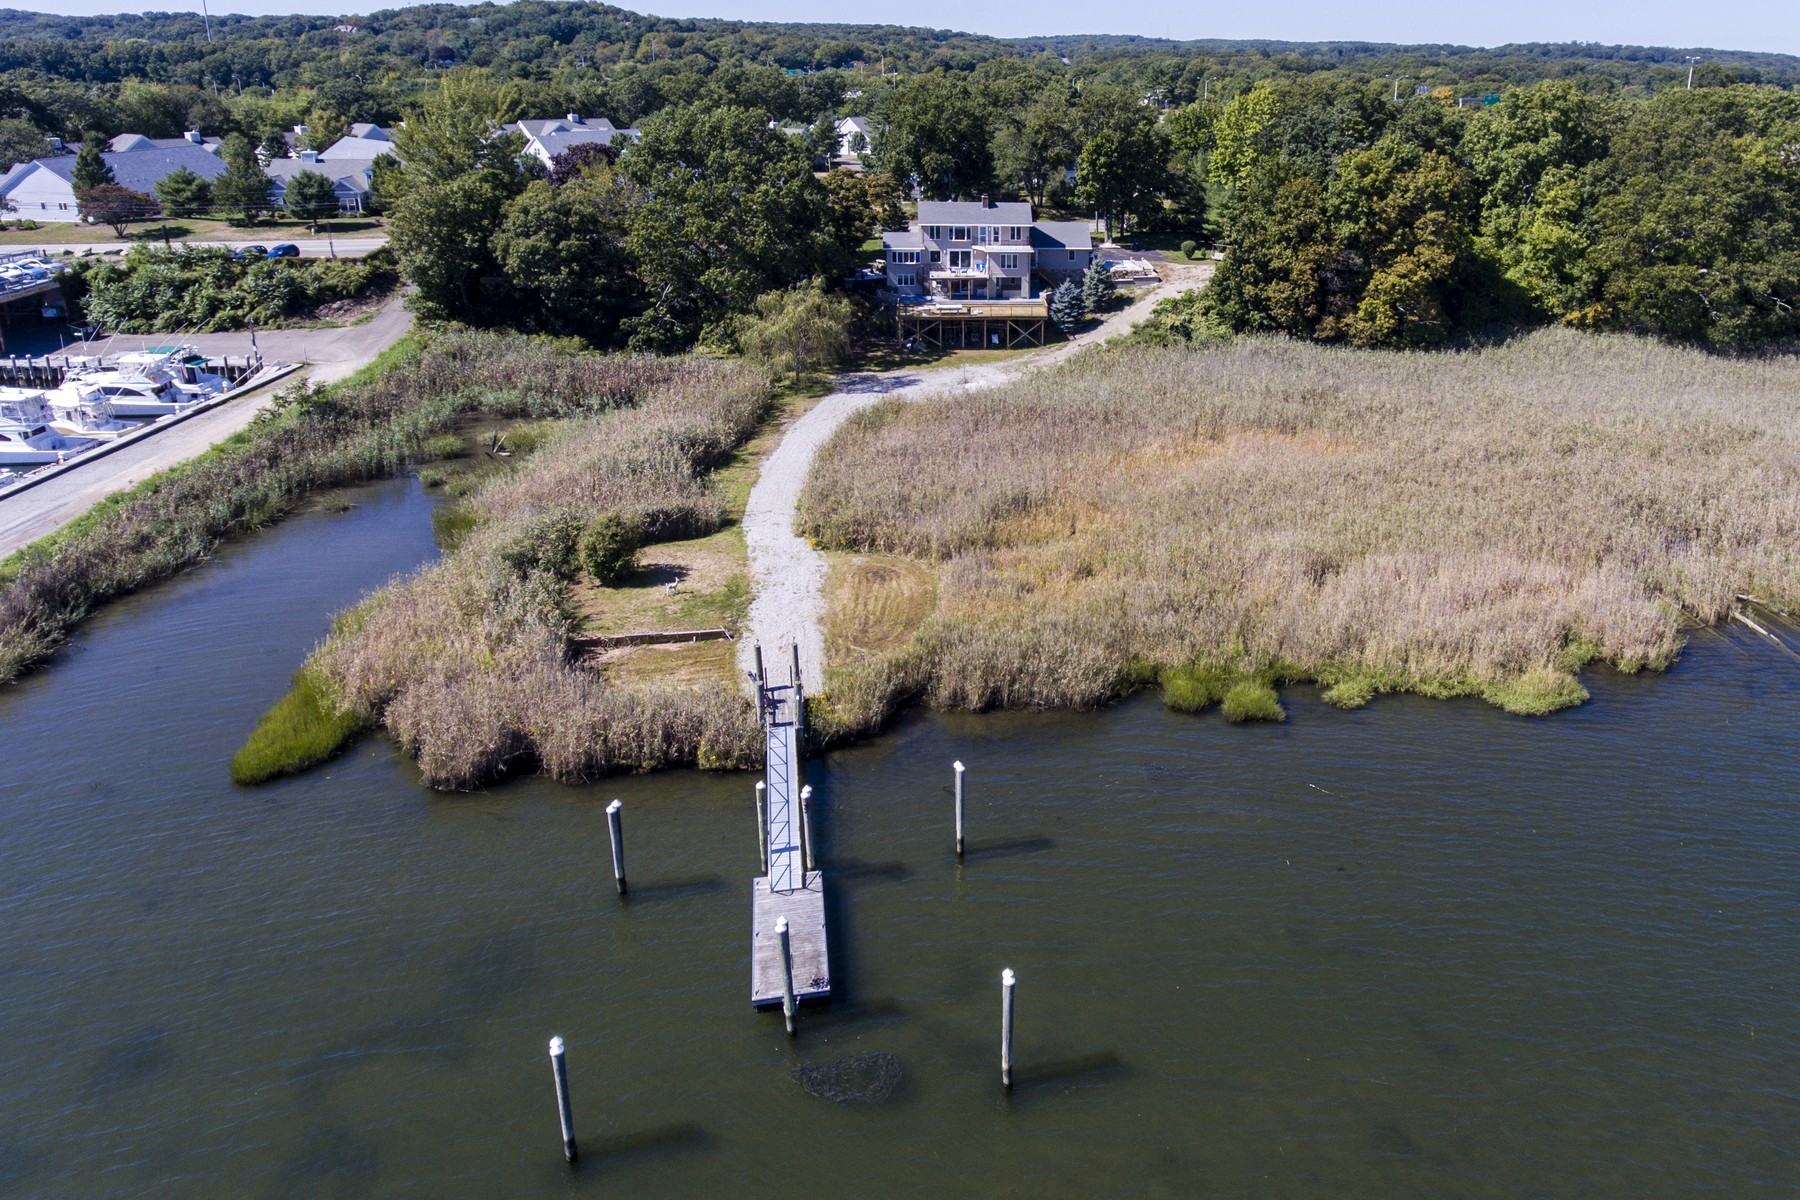 Einfamilienhaus für Verkauf beim Waterfront Property With Breathtaking Views 180 Ferry Road Old Saybrook, Connecticut, 06475 Vereinigte Staaten